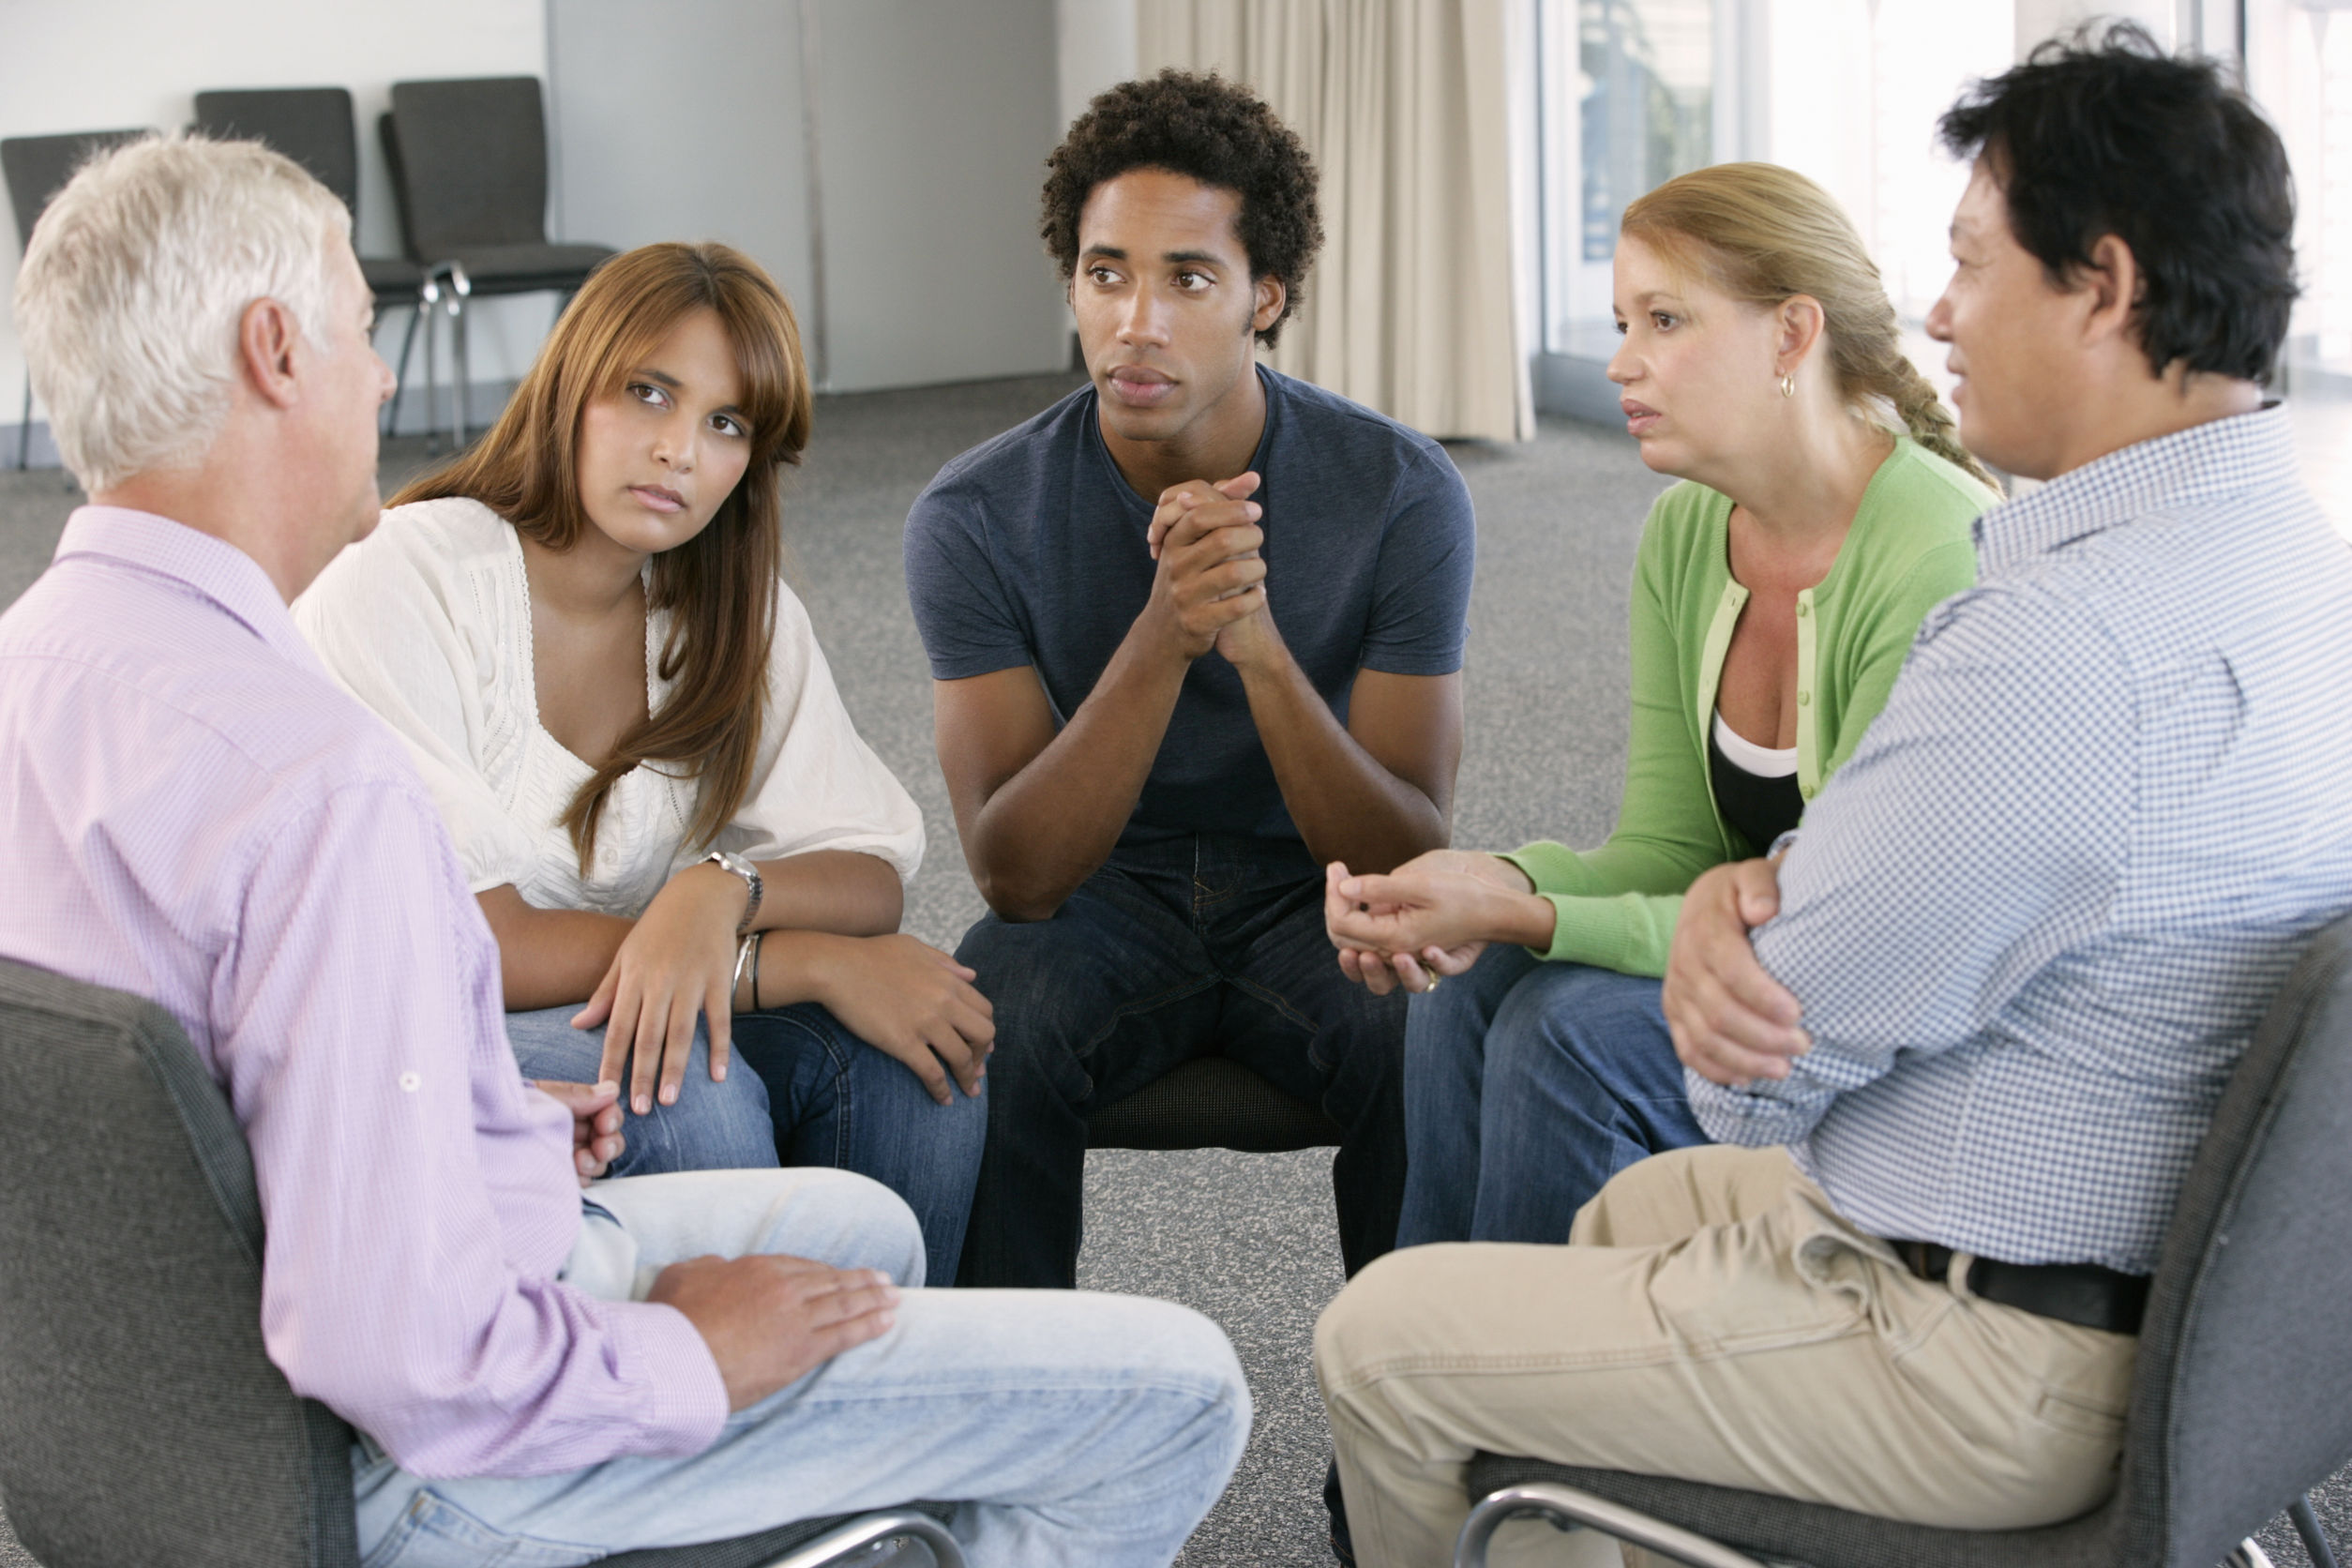 Sex addiction support group